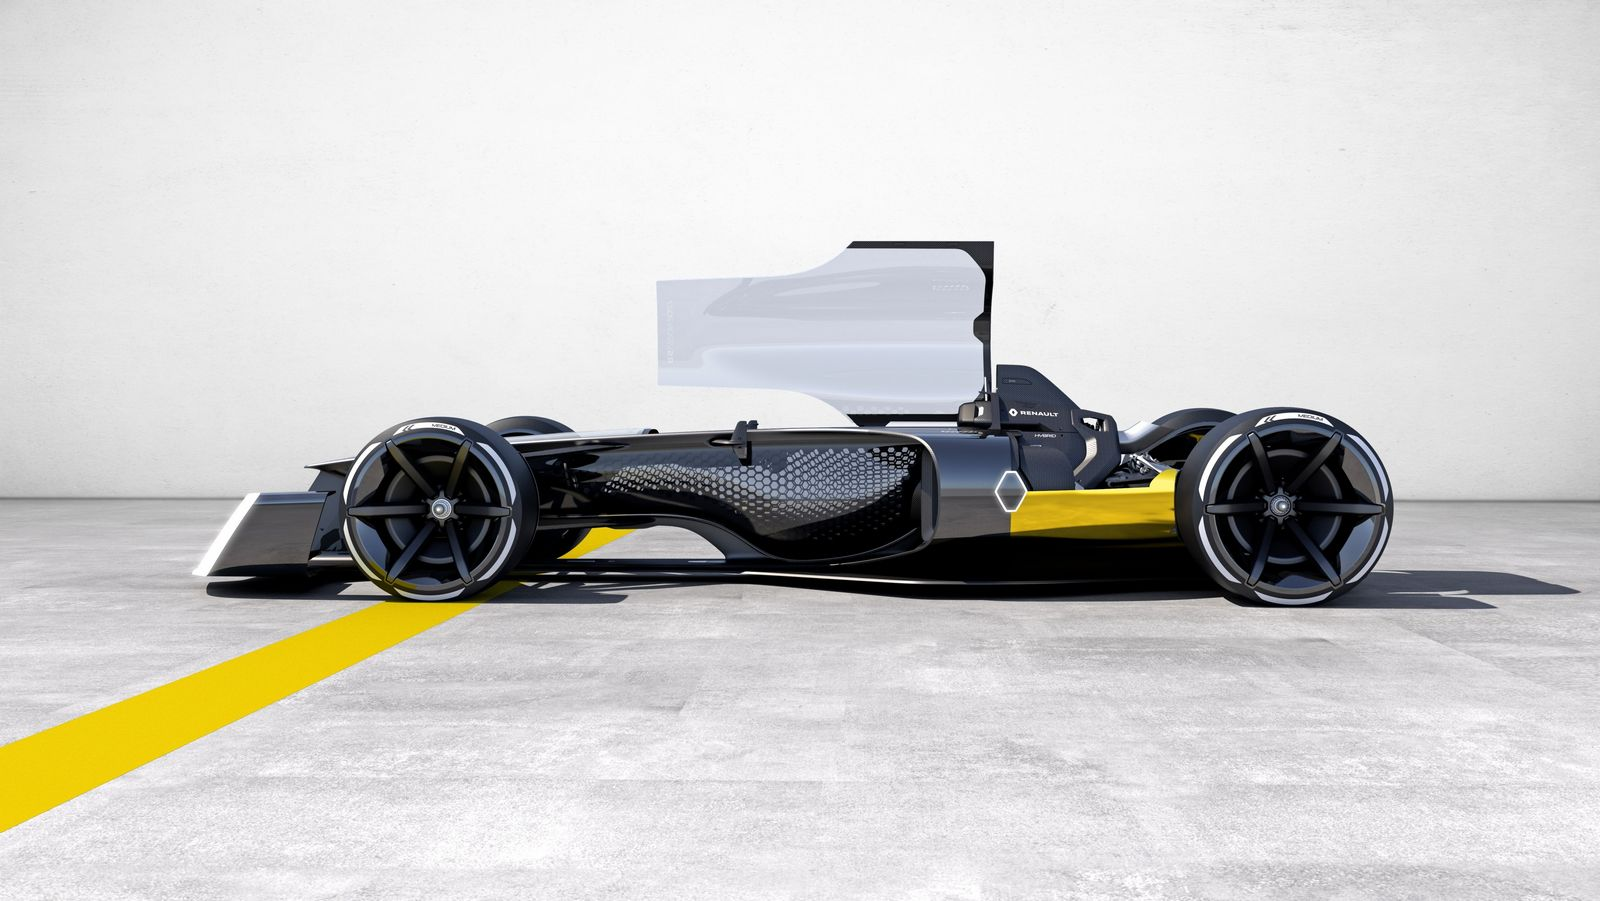 Renault RS 2027 Vision concept (18)